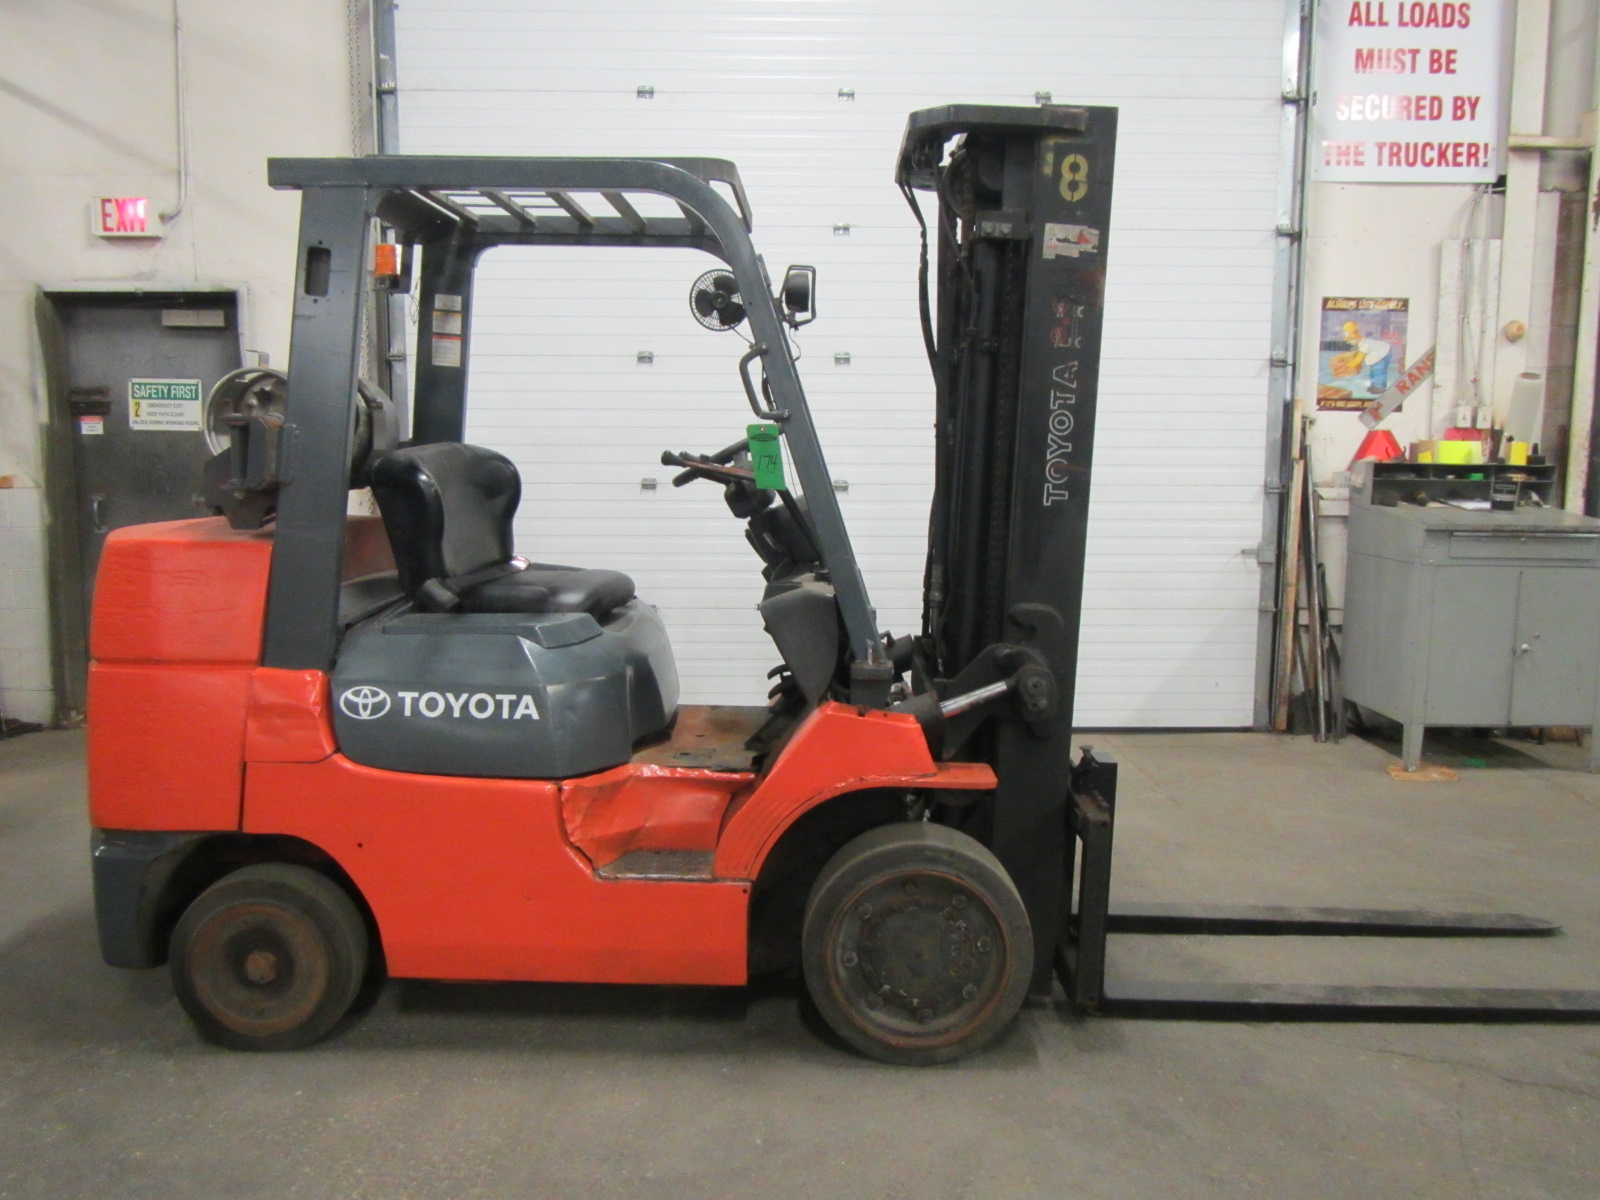 Lot 174 - 2009 Toyota model 7FGCU35 7250lbs capacity forklift - LPG (propane gas) & 3-stage mast & 5 foot